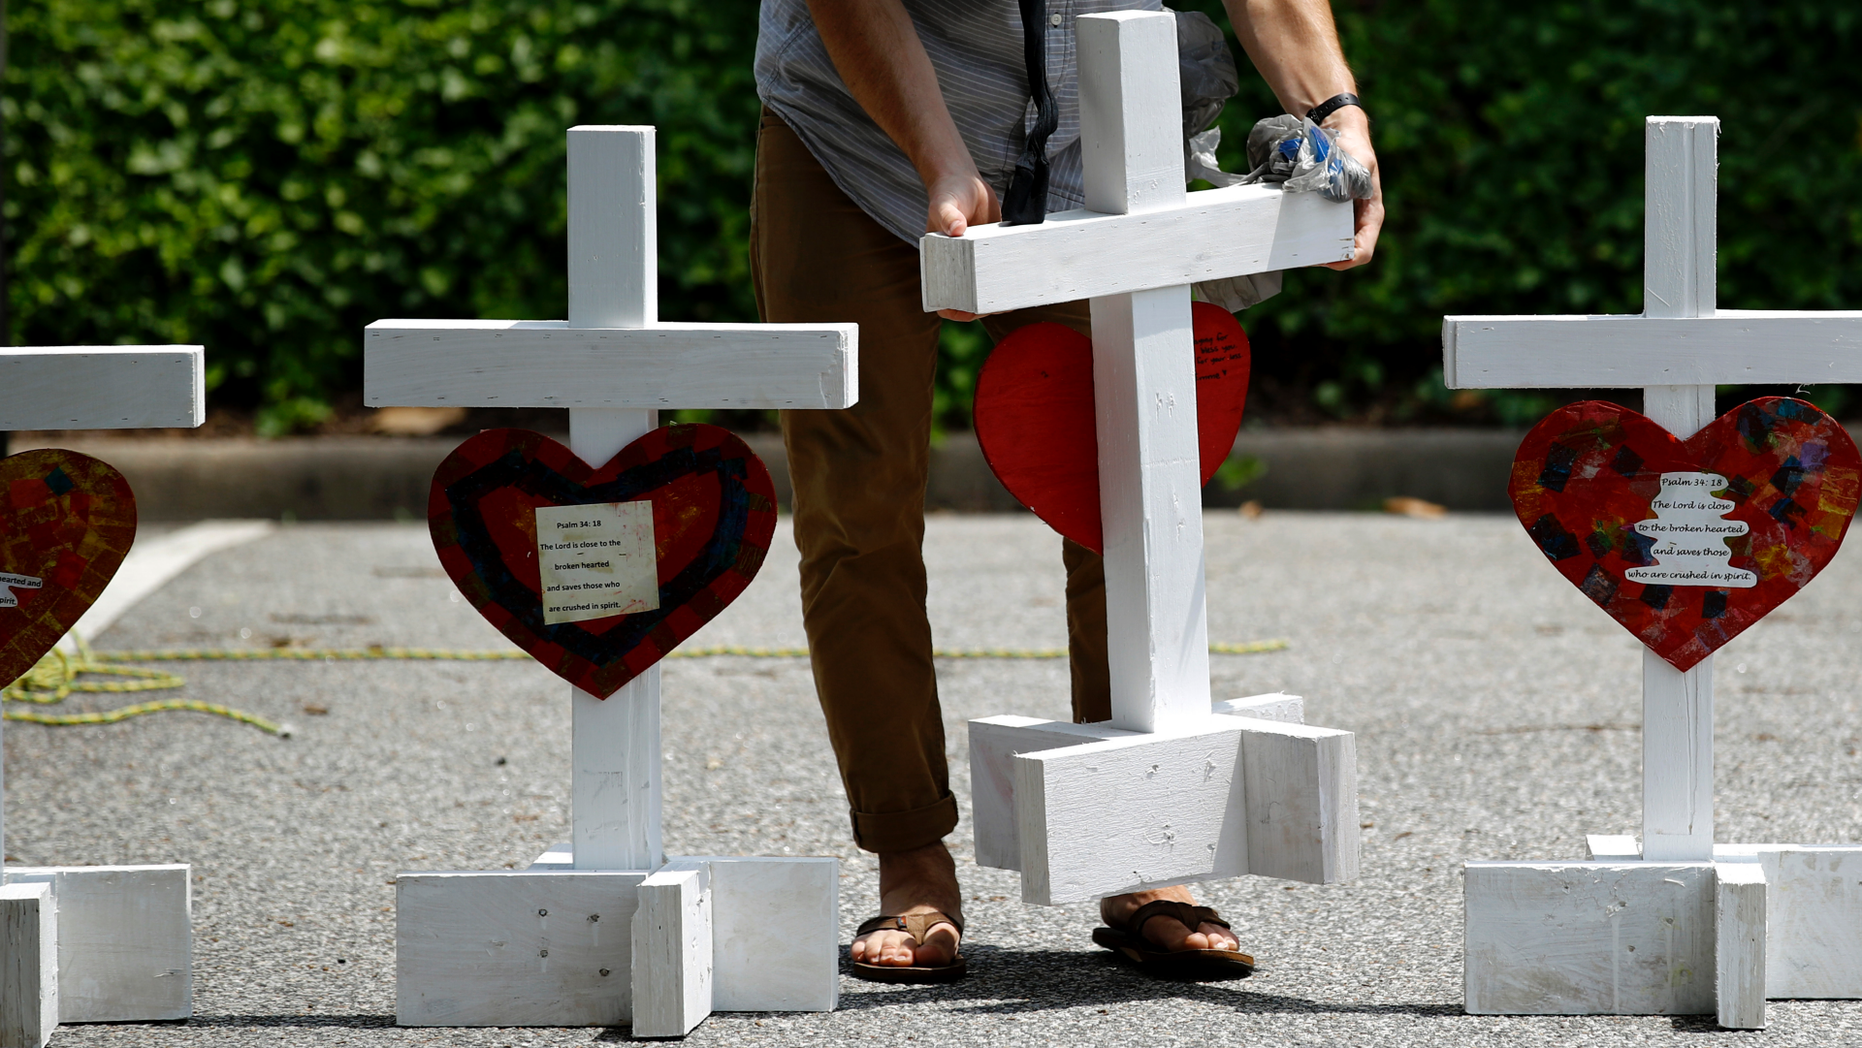 FILE - In this June 2, 2019, file photo, a volunteer prepares to place crosses for victims of a mass shooting at a municipal building in Virginia Beach, Va., at a nearby makeshift memorial. Police responding to the deadly mass shooting were unable to confront the gunman at one point because they didn't have the key cards needed to open doors on the second floor. Whether the delay contributed to the death toll is unclear, but the episode illustrated how door-lock technology that is supposed to protect people can hamper police and rescue workers in an emergency. (AP Photo/Patrick Semansky, File)